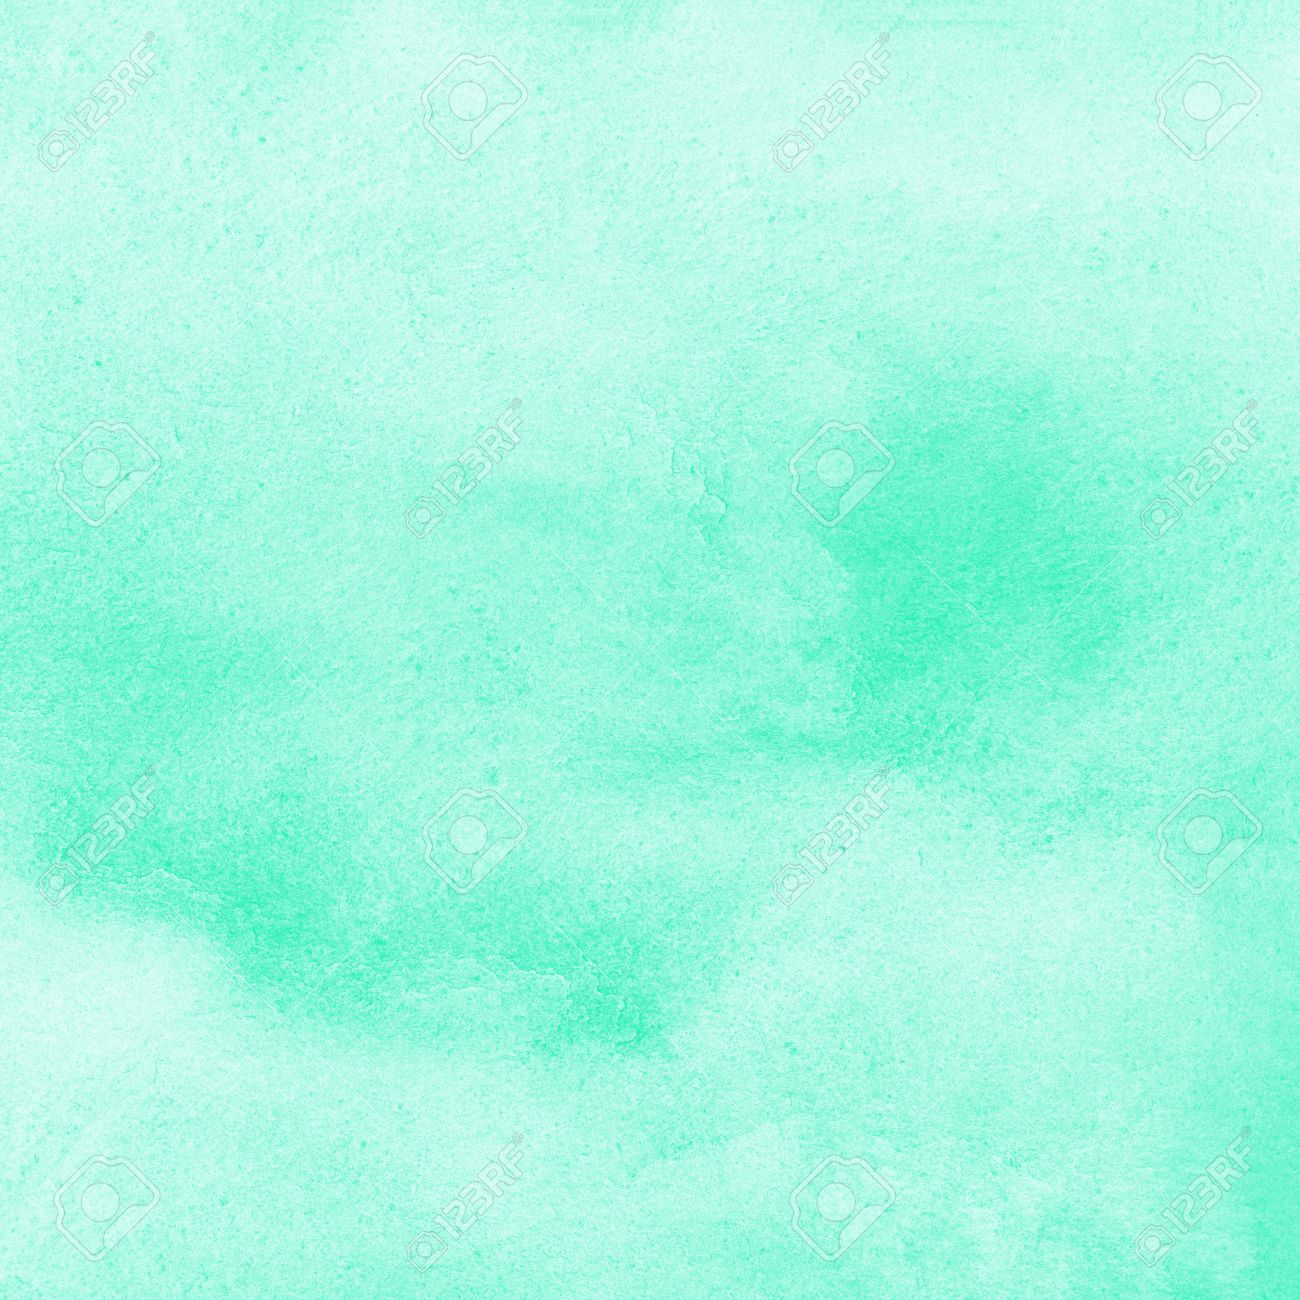 Related Image Green Watercolor Watercolor Texture Watercolor